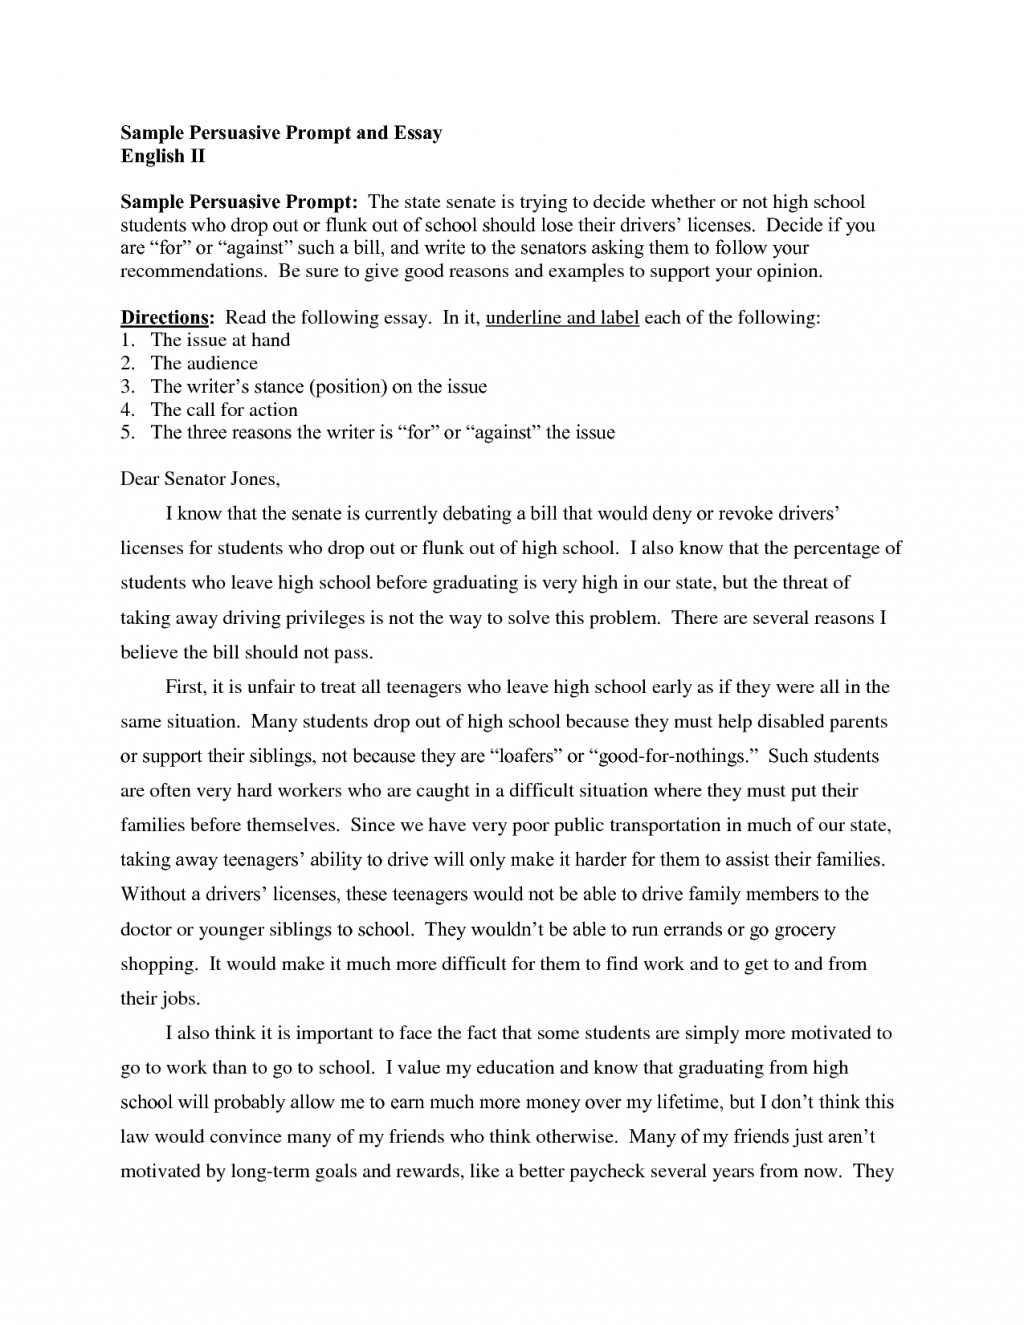 014 Persuasive Essays For High School Sample Ideas Highschool Students Good Prompt Funny Easy Fun List Of Seniors Writing English Free Research Paper Argumentative Fantastic Topic Large